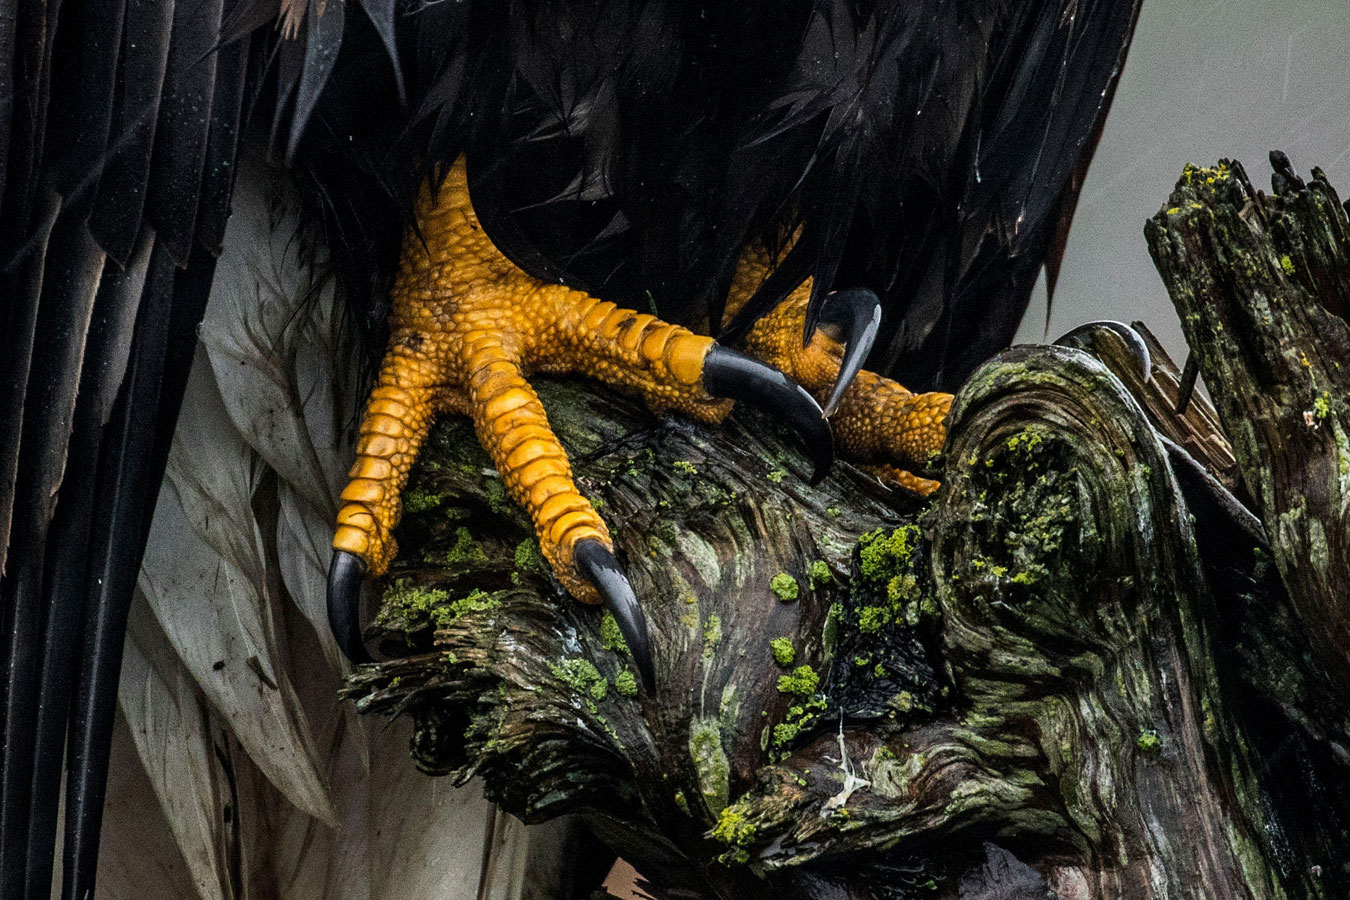 Bald Eagle, © Liron Gertsman, Youth Honorable Mention, Audubon Photography Awards